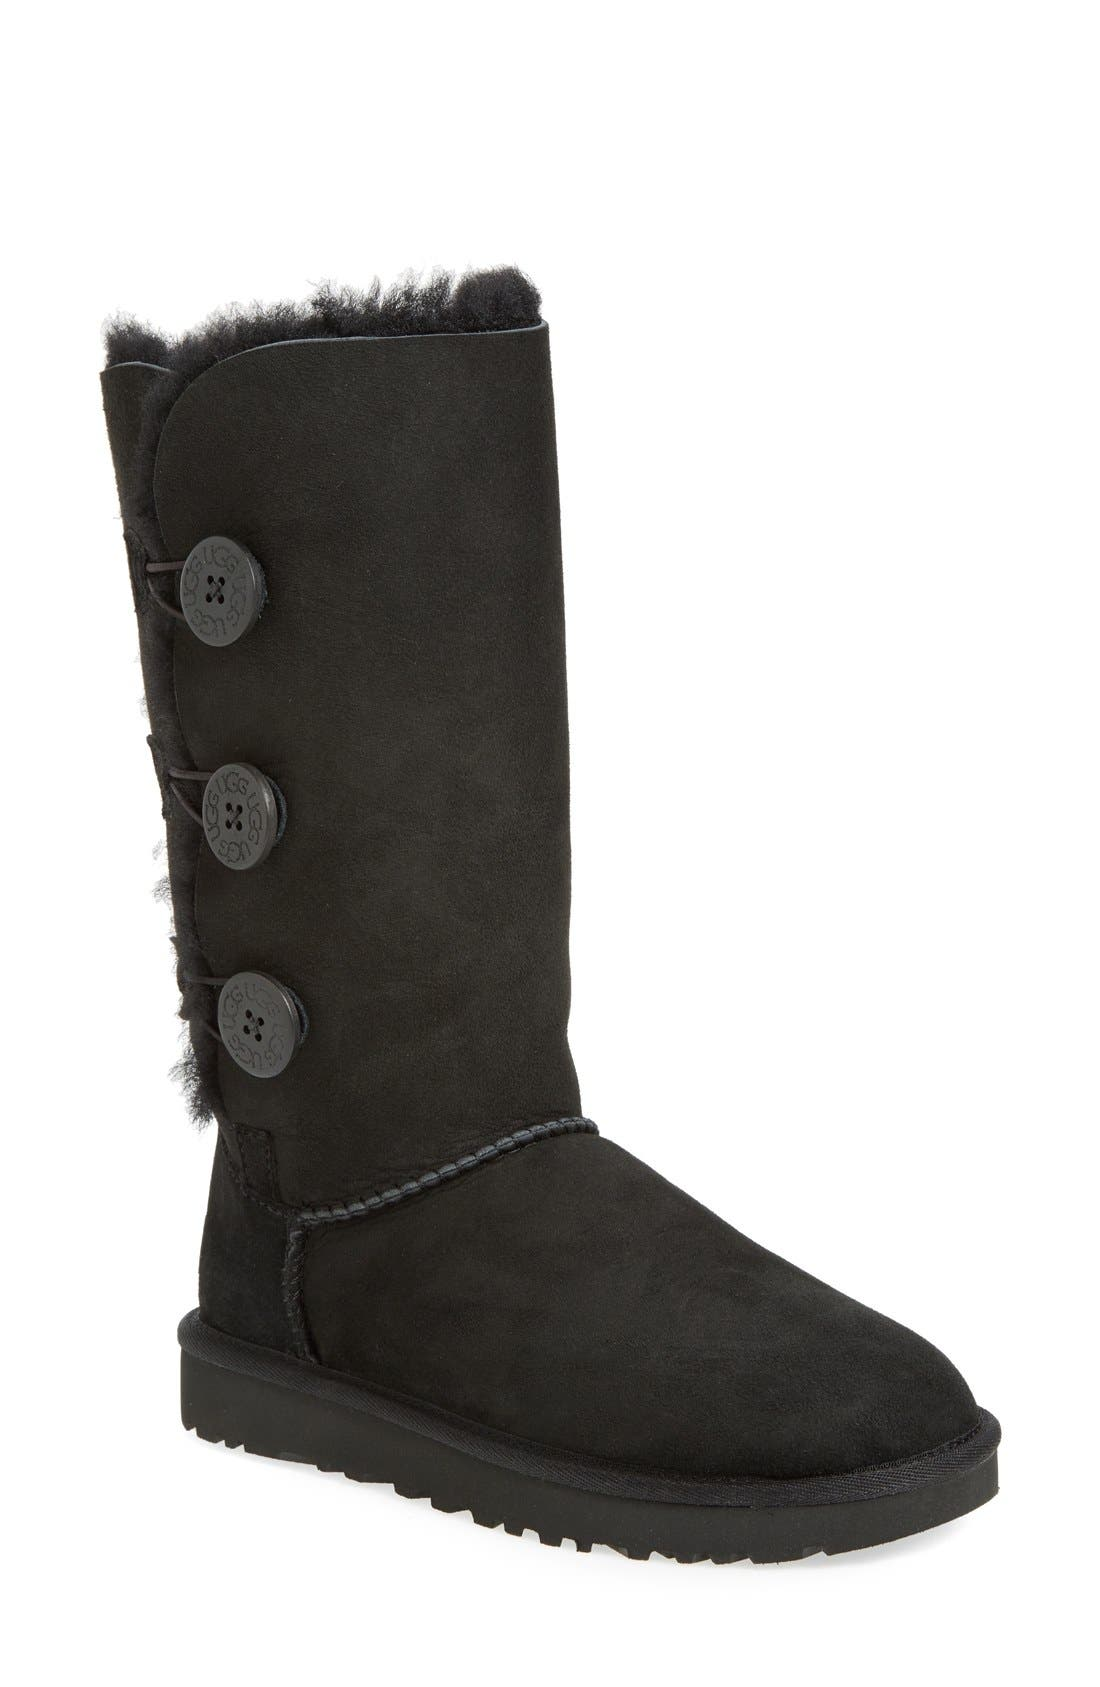 Ugg Bailey Button Triplet Ii Genuine Shearling Boot, Black